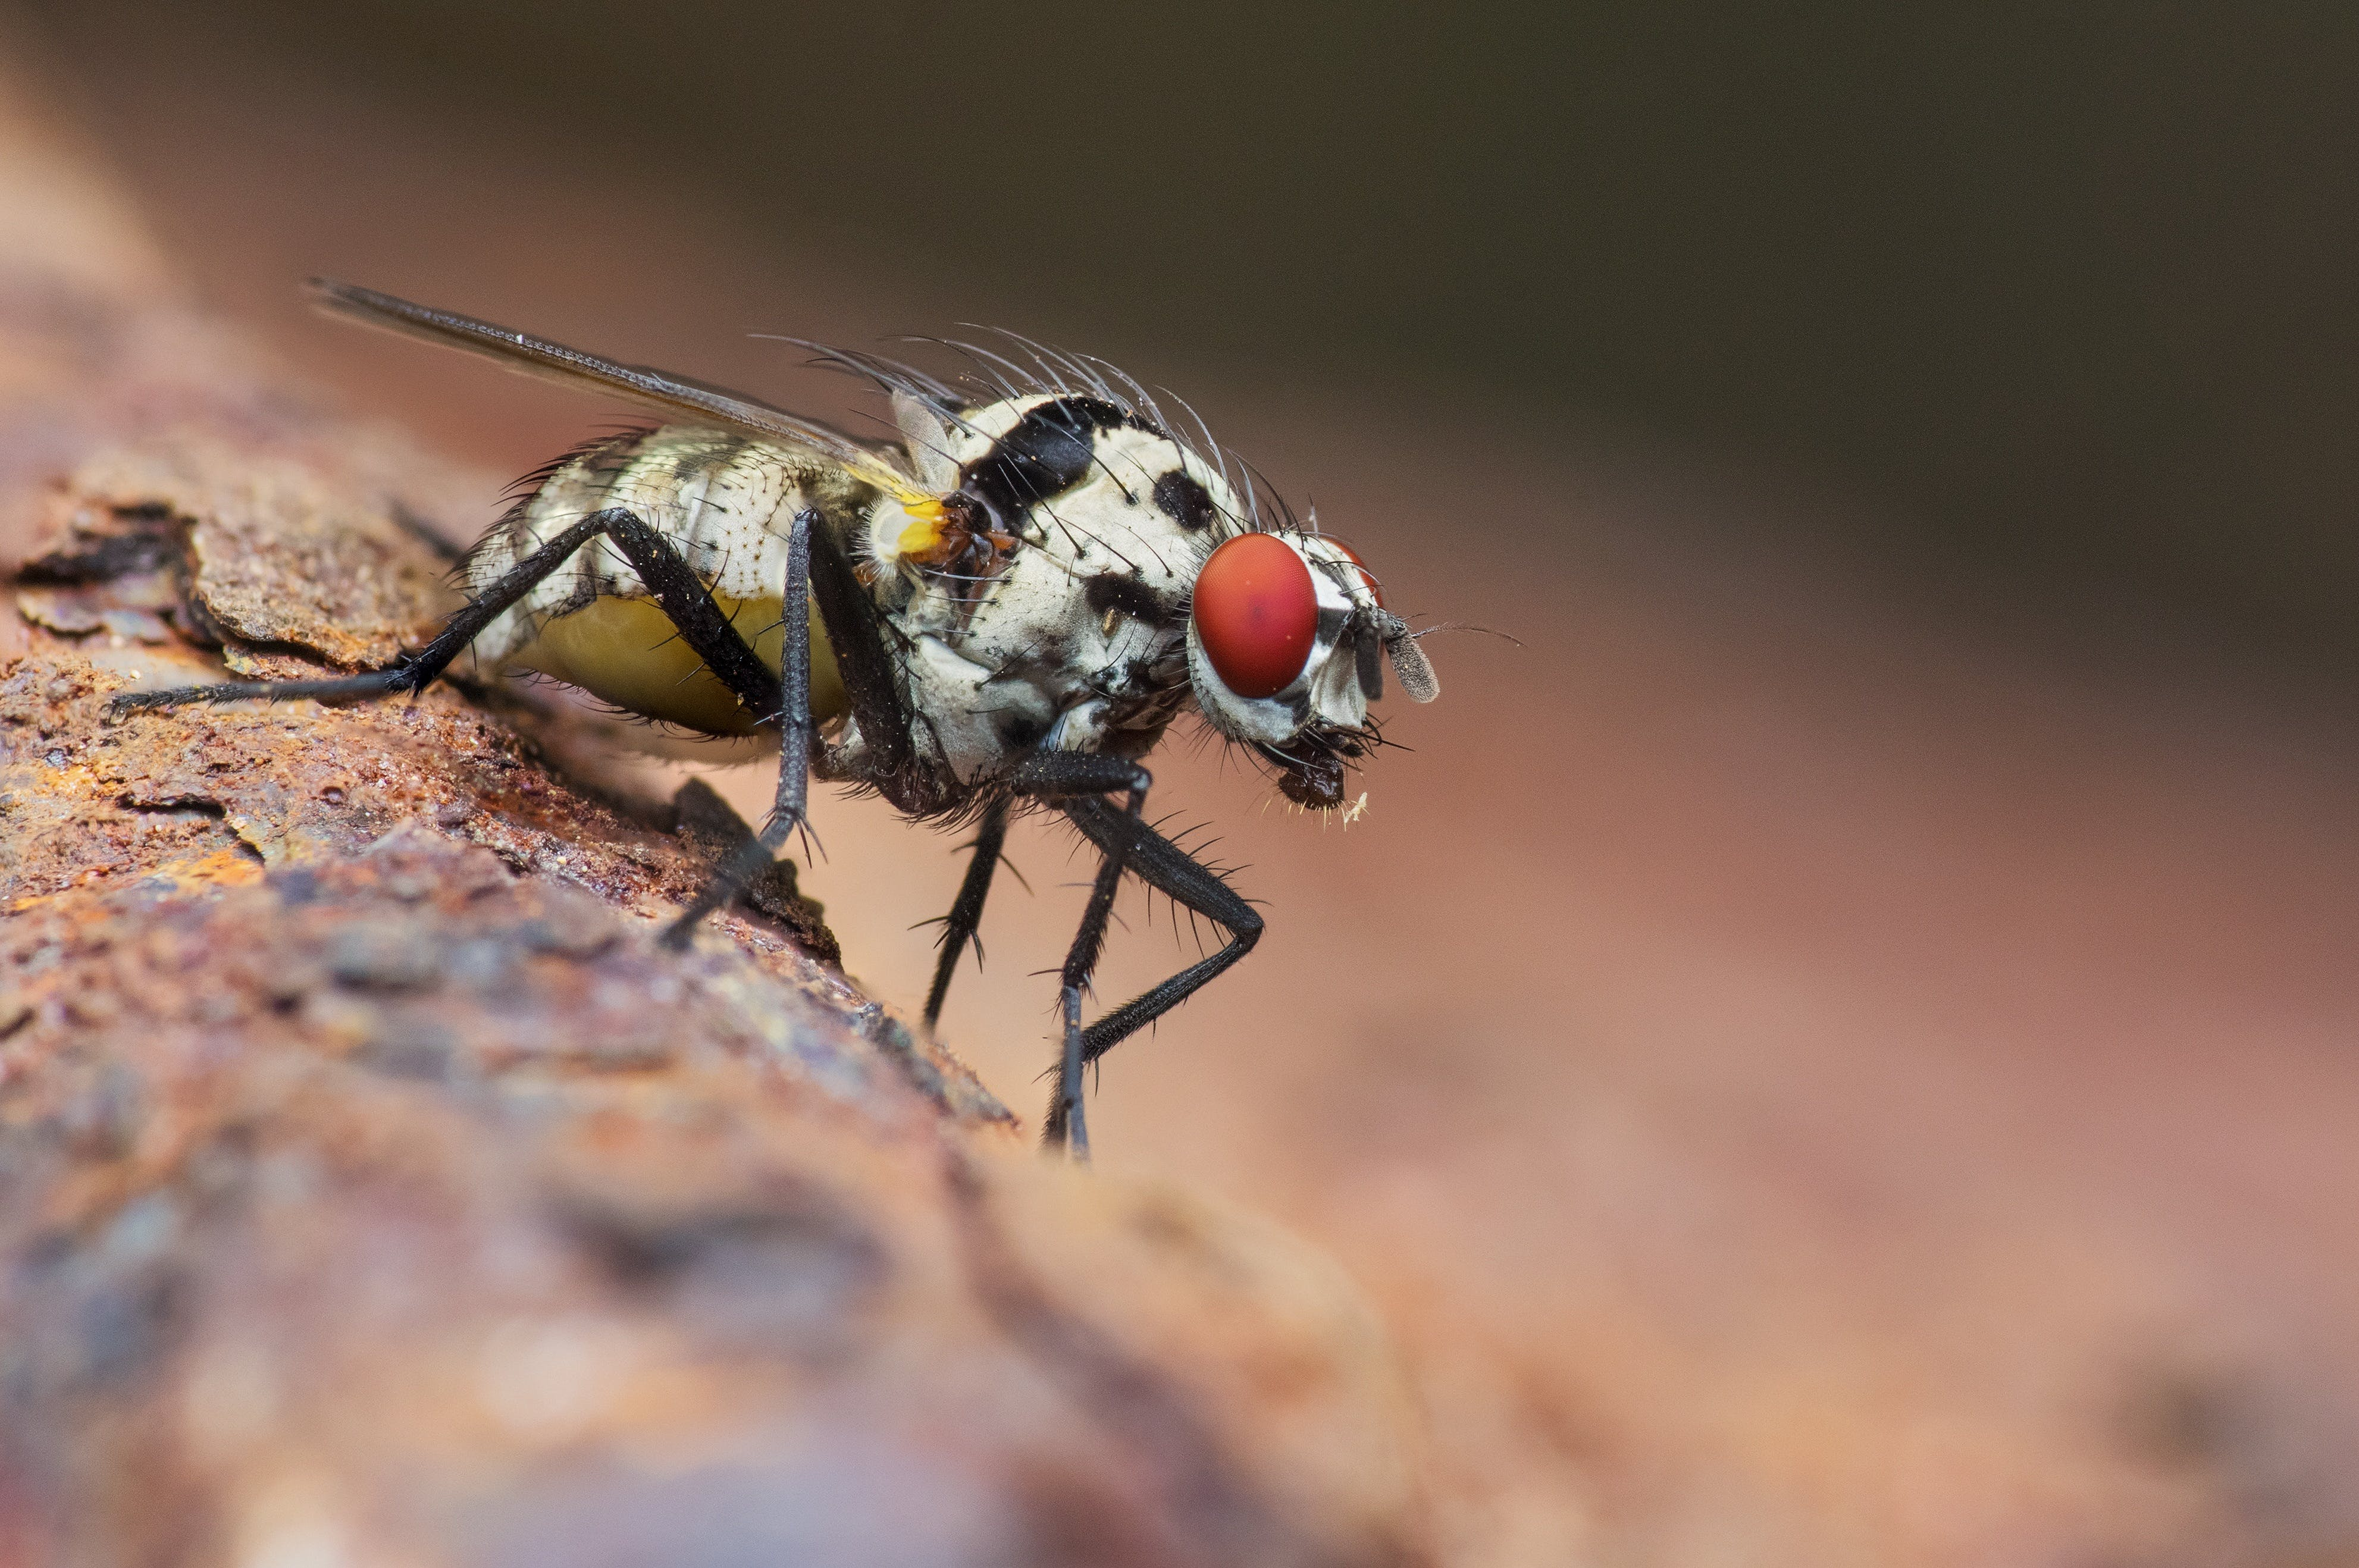 Gray and Black Fruit Fly in Macro Photography